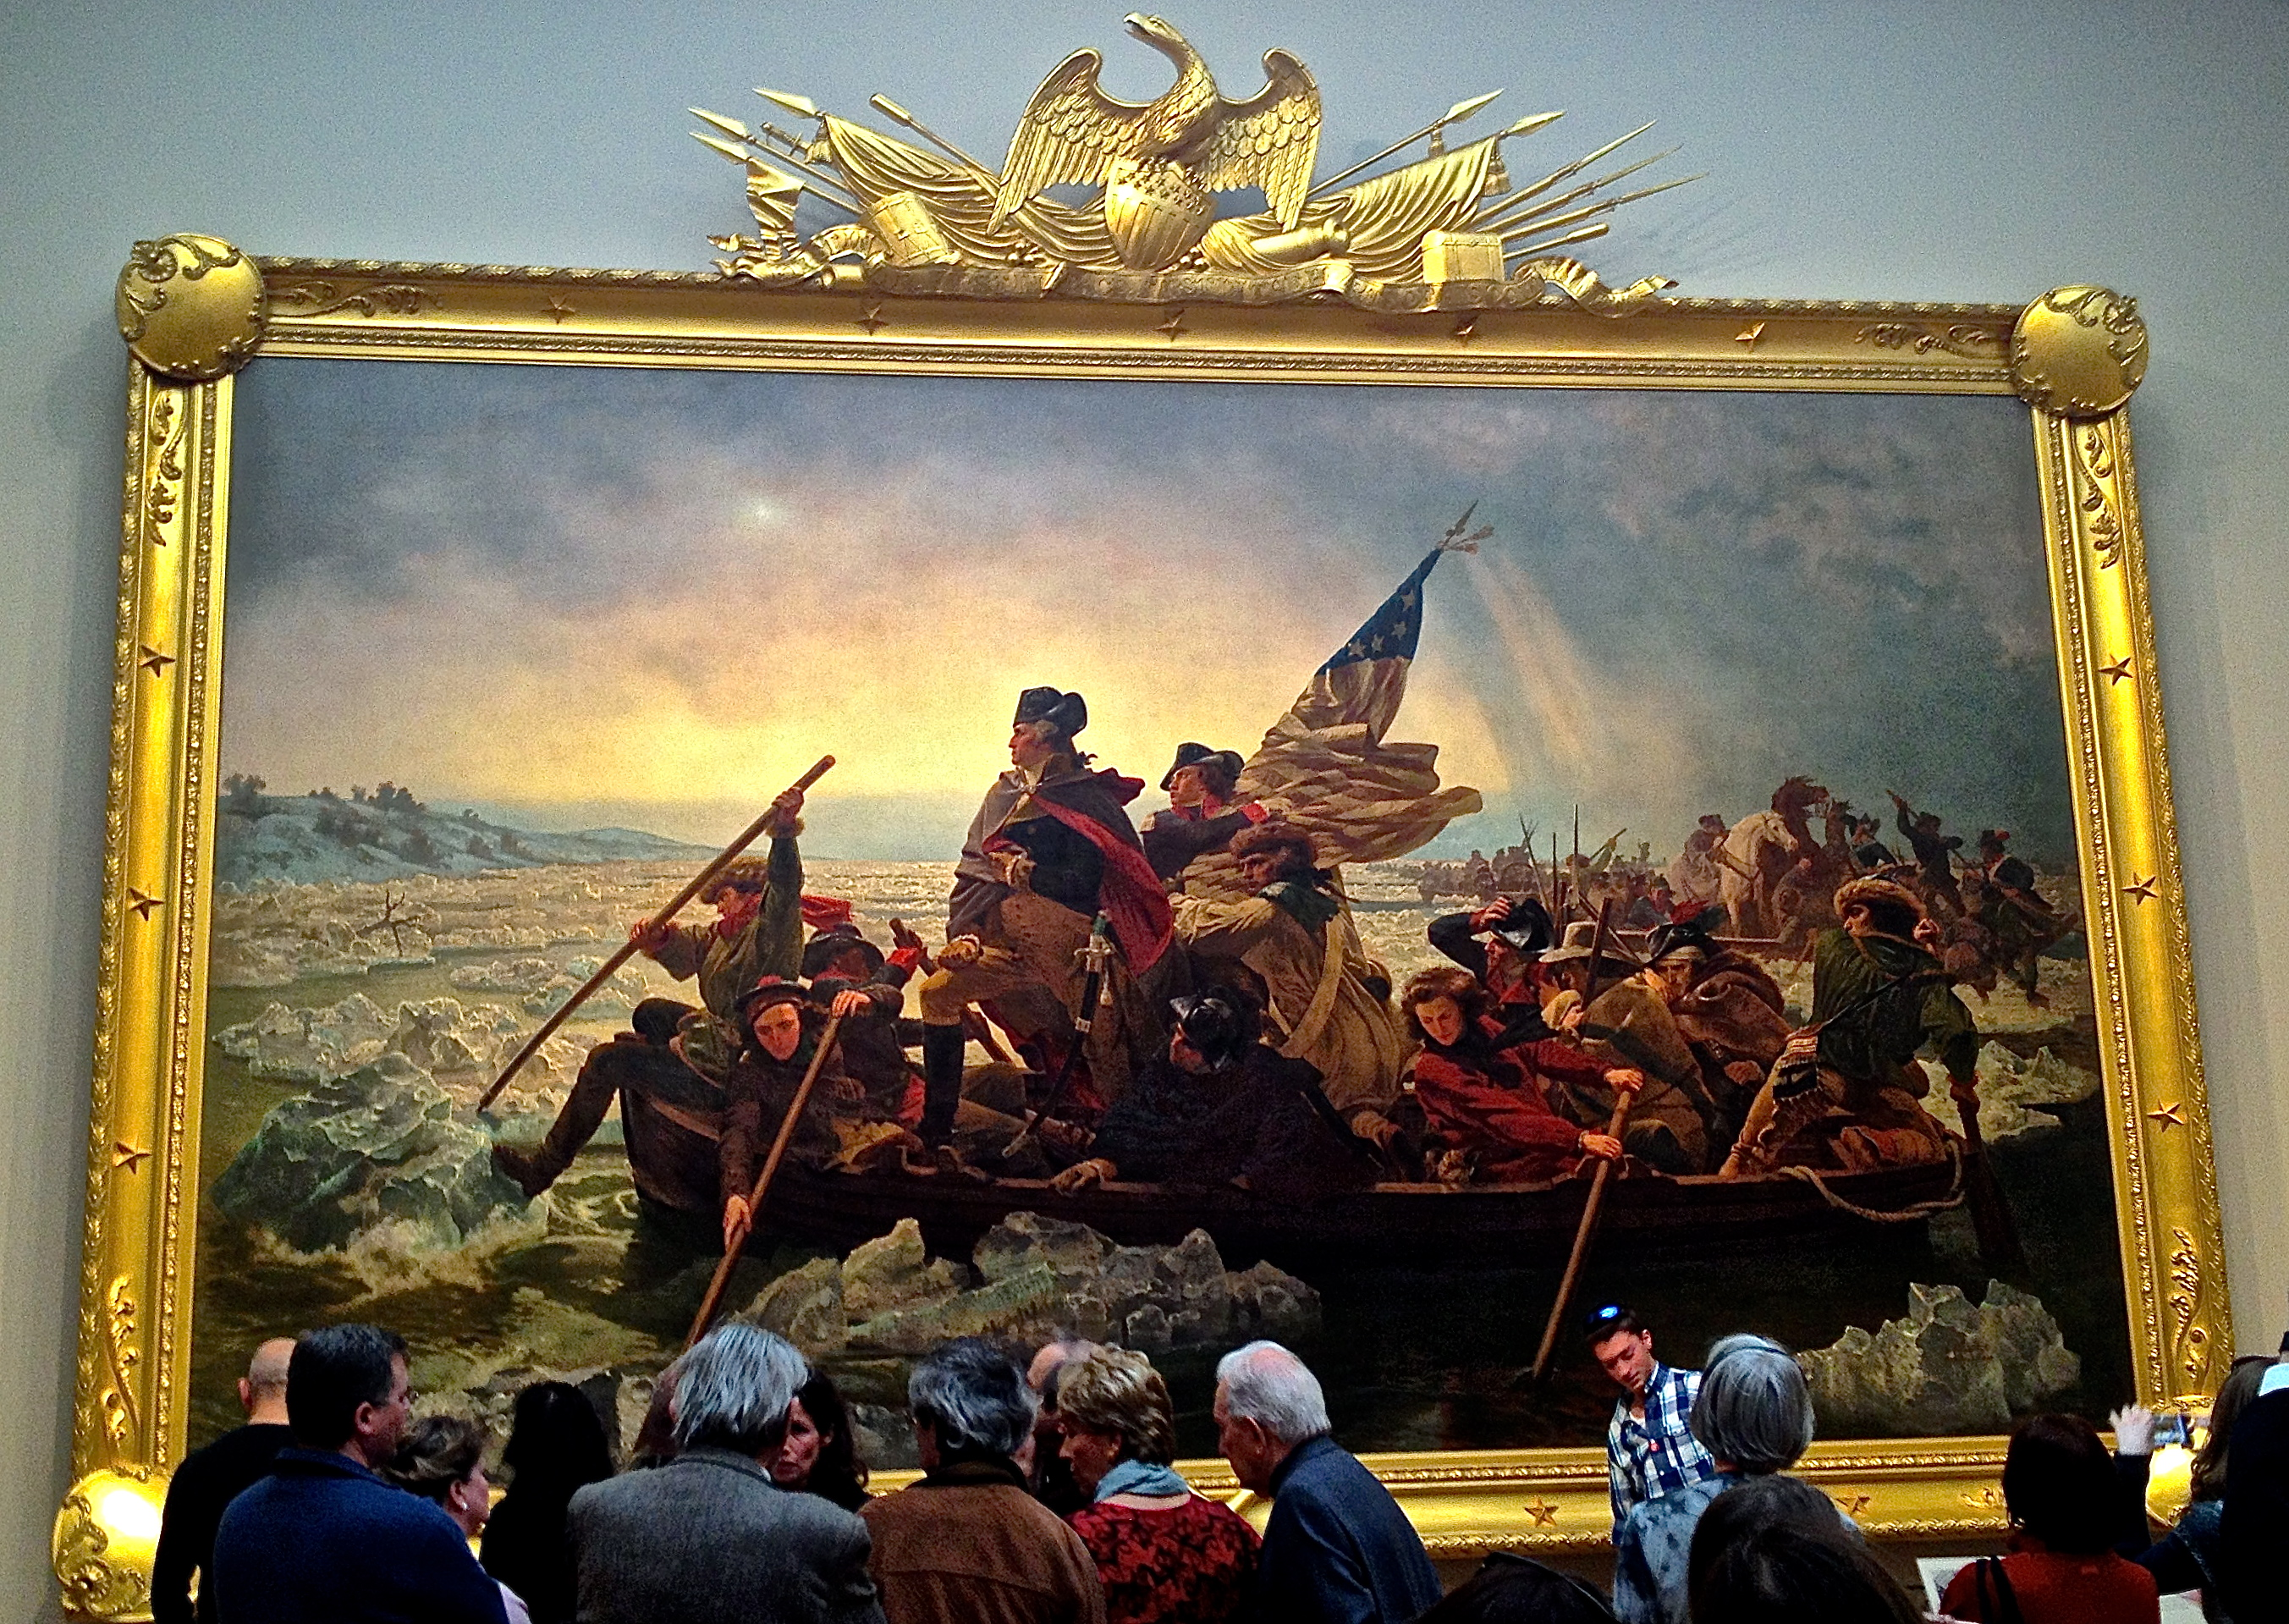 washington crossing the delaware The 10 days that changed the world, washington's crossing the delaware the battles of trenton and princeton a remarkable situation of two battles that chan.